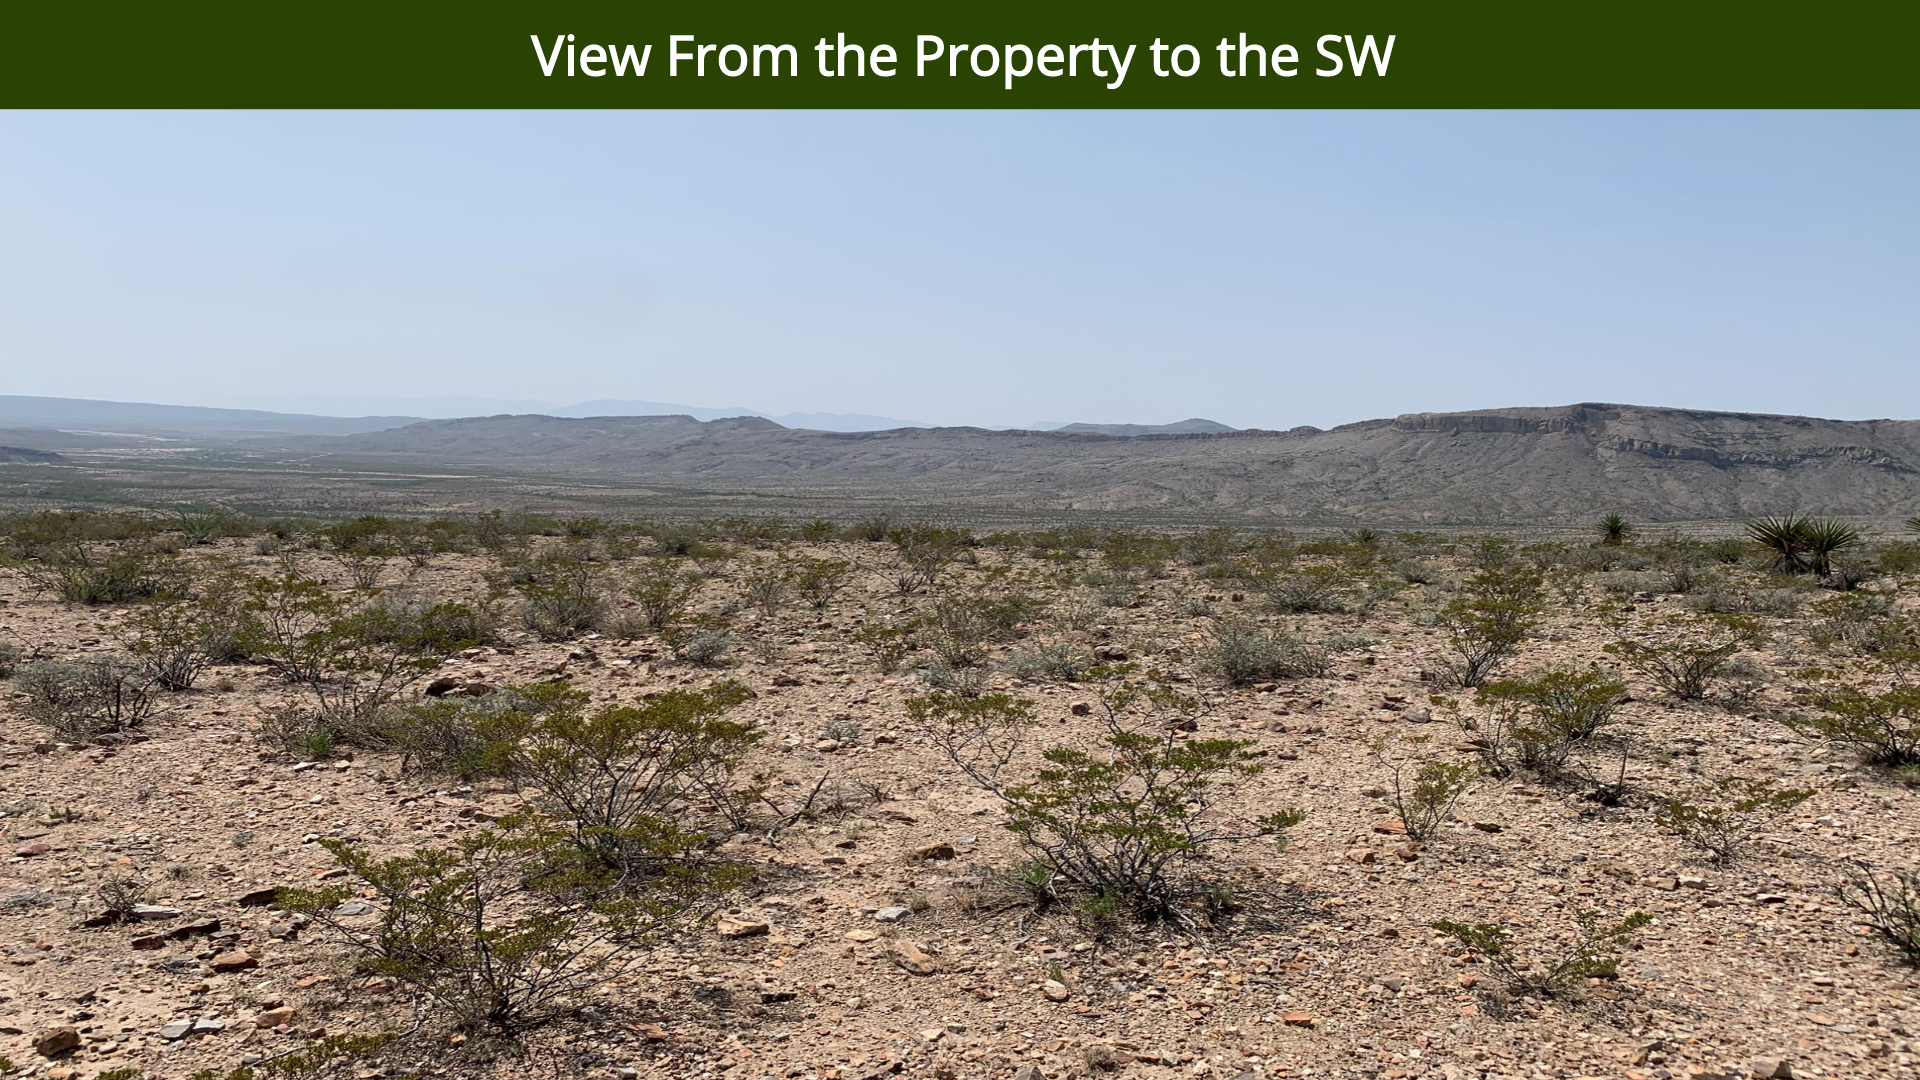 View From the Property to the SW